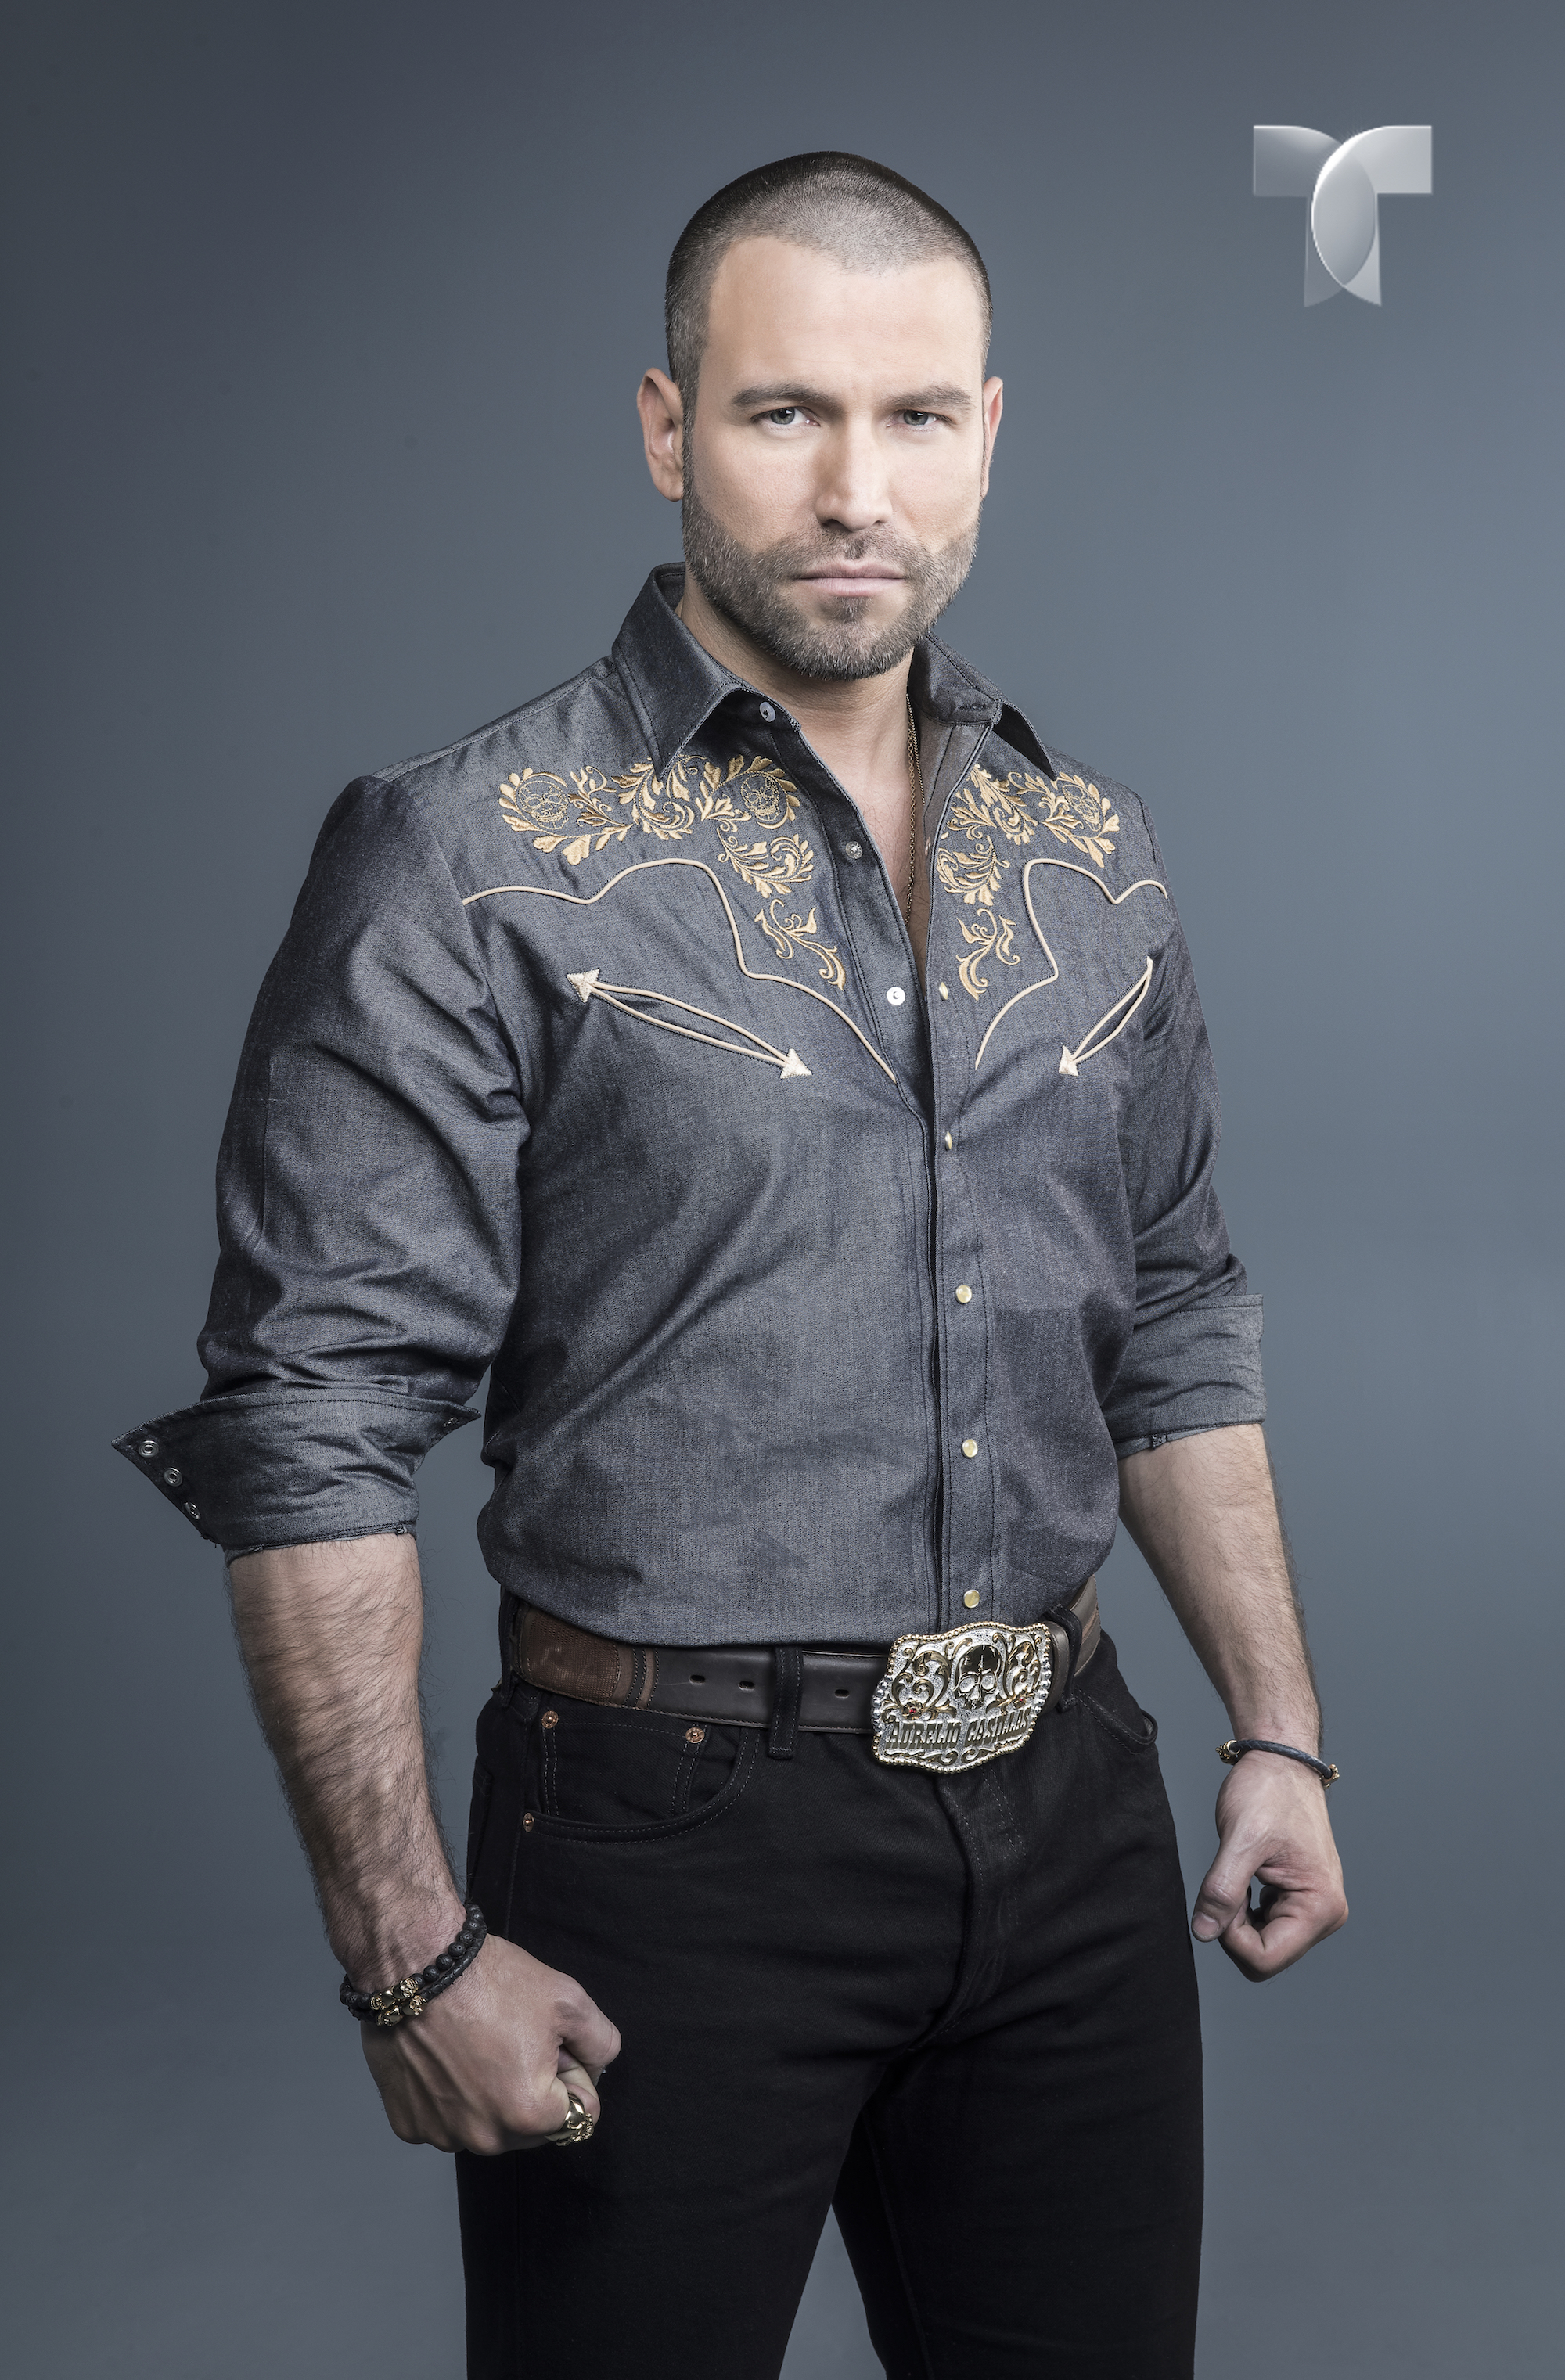 _ESDLC_Rafael Amaya como Aurelio Casillas_003 copy copia 2